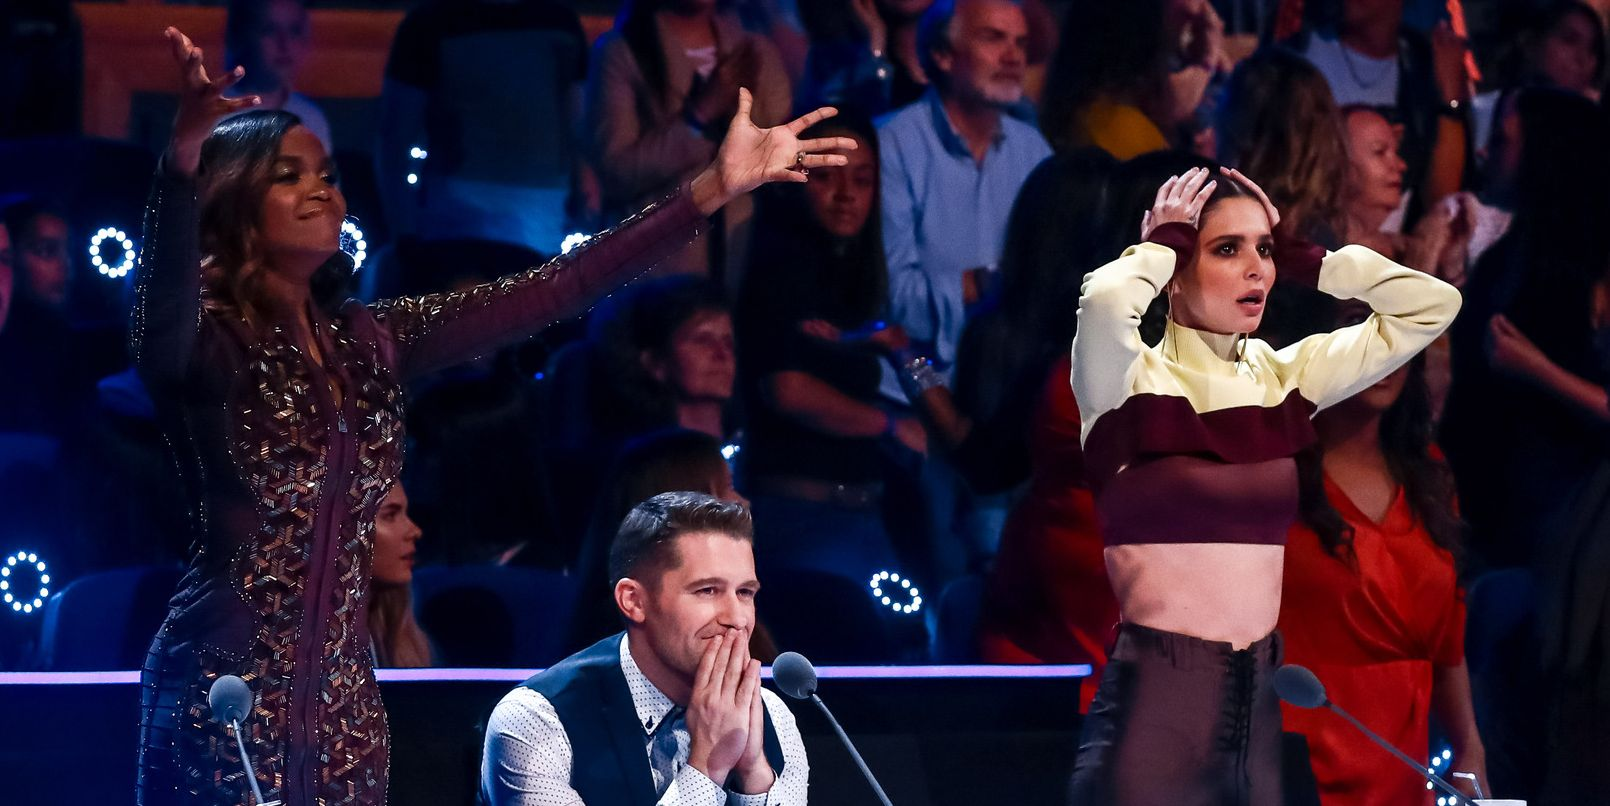 The Greatest Dancer – judges Oti Mabuse, Matthew Morrison and Cheryl